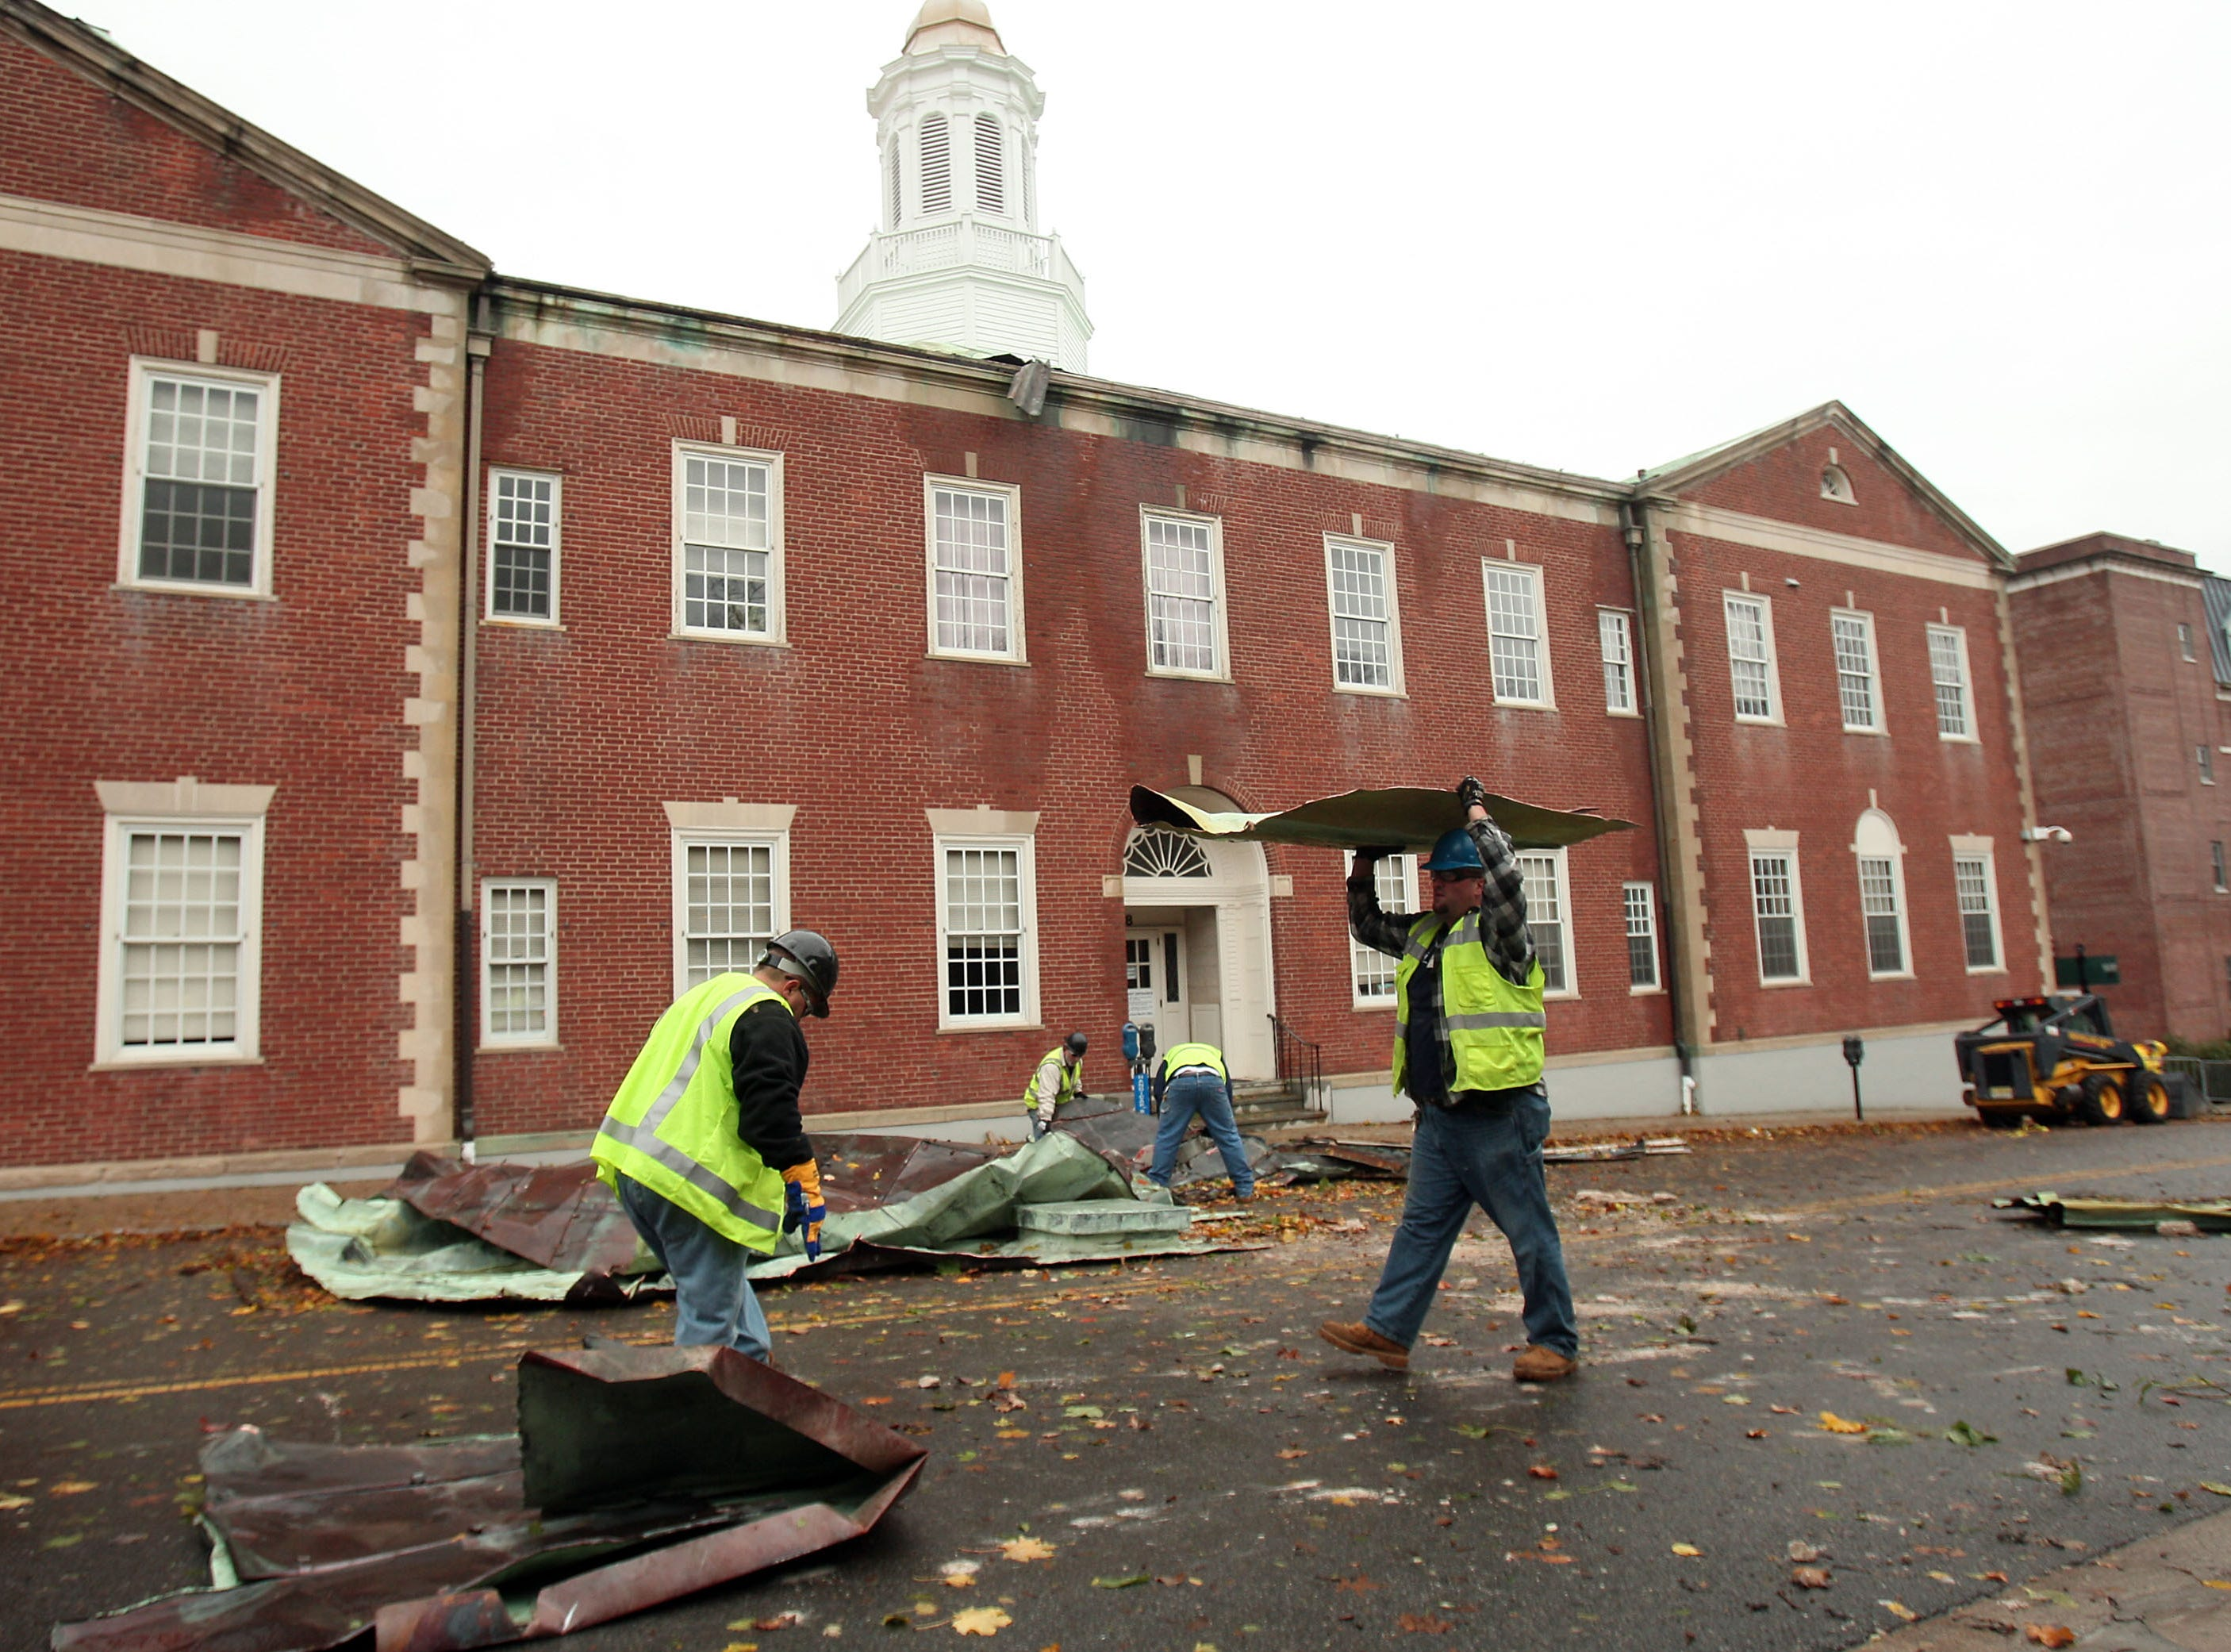 Morristown, NJ-- October 30, 2012--County grounds workers clean up after copper roofing from the Morris County Courthouse was blown off the roof due to heavy winds from Hurricane Sandy. Bob Karp/Staff Photographer/DAILY RECORD